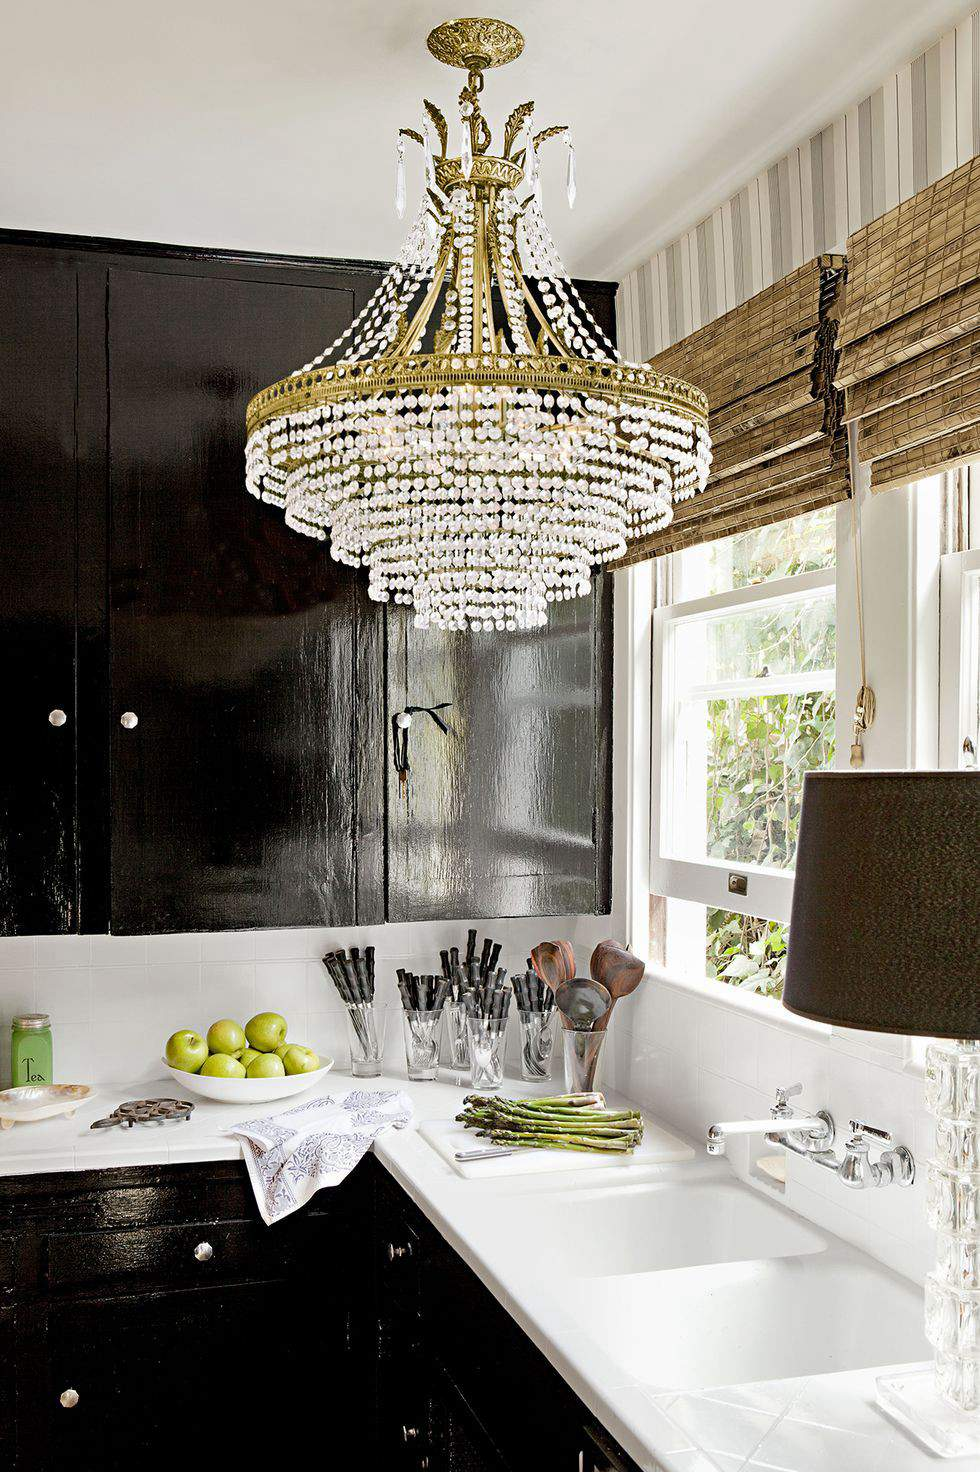 19. Black And White Kitchen Decor With Chandelier